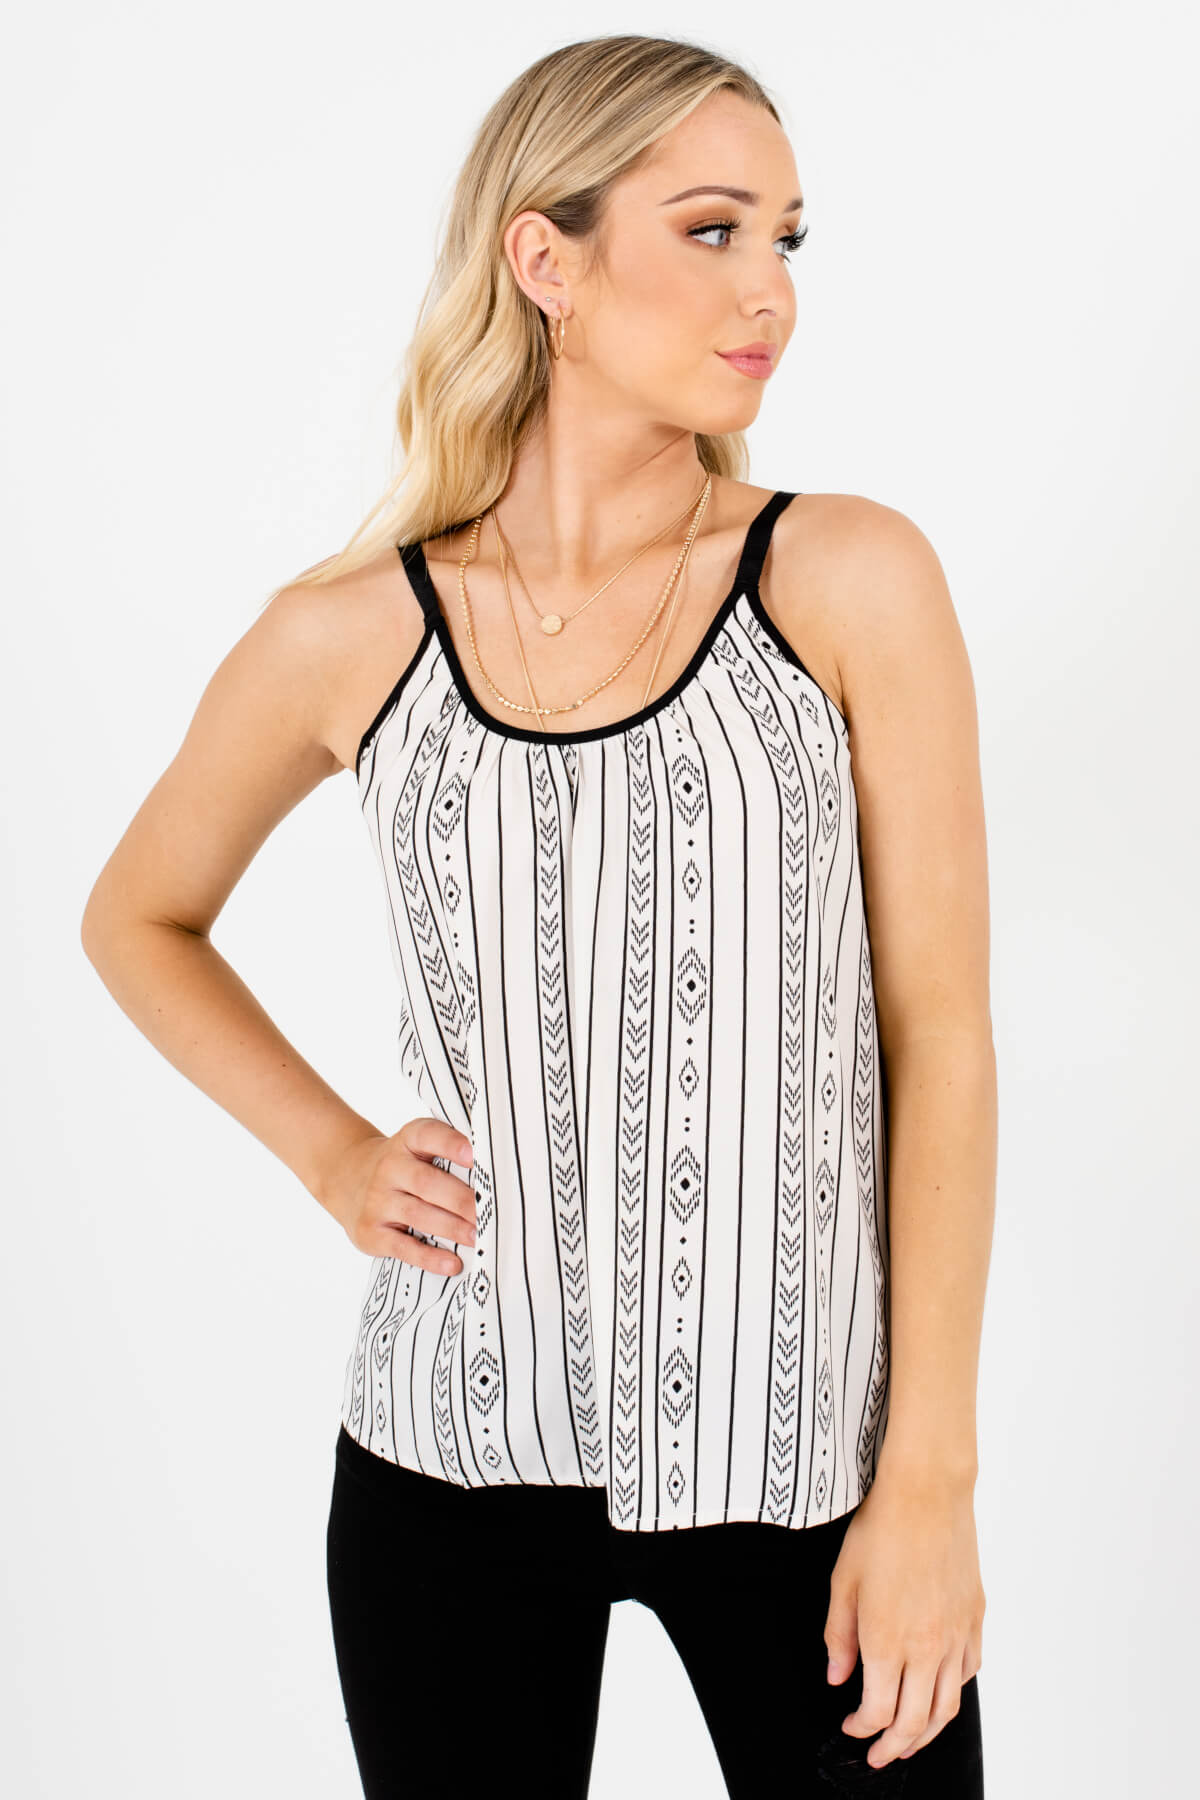 Cream Black Geometric Patterned Boutique Tank Tops for Women